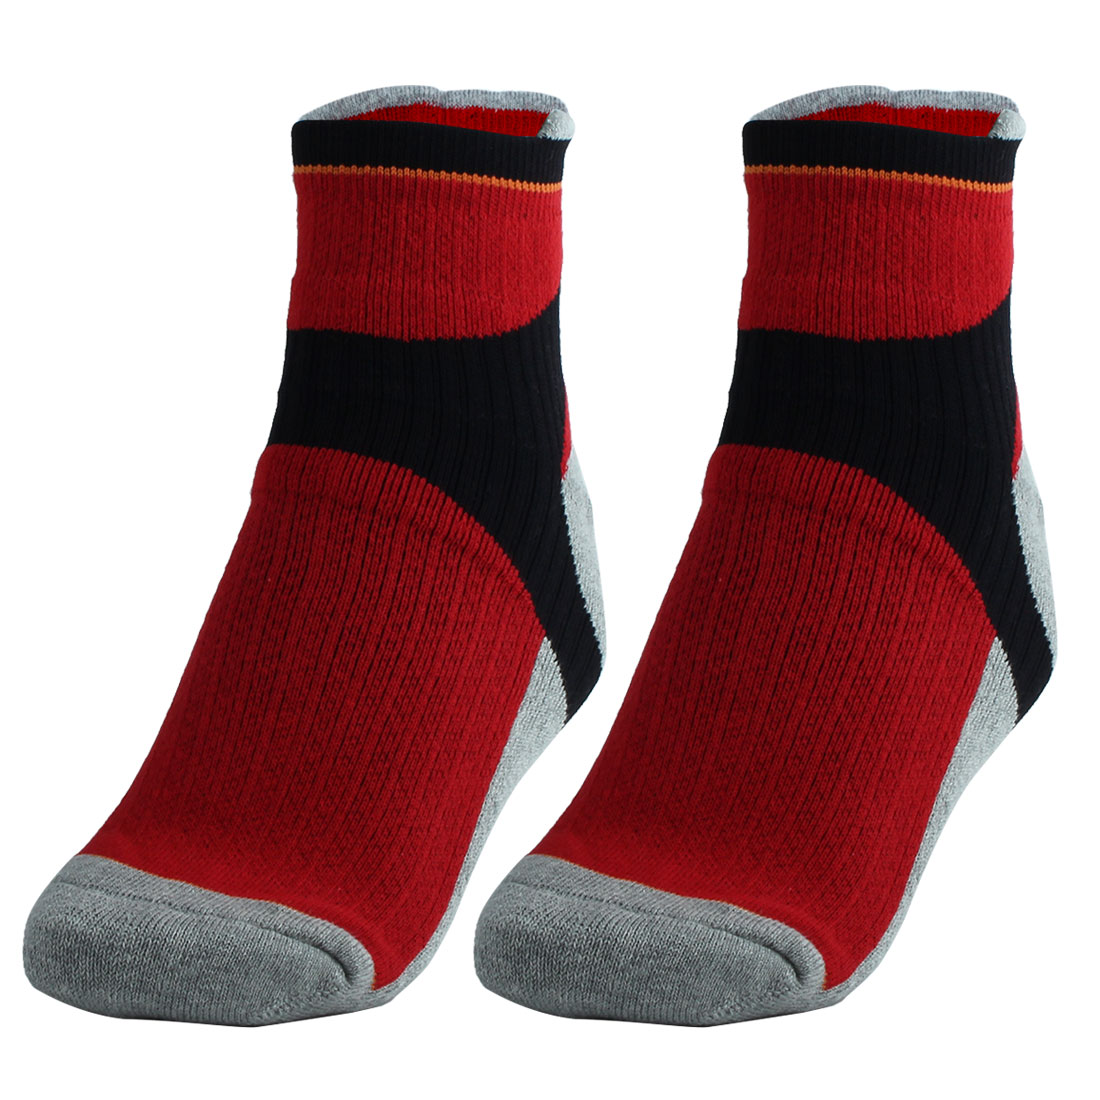 R-BAO Authorized Adult Badminton Athletic Mountain Bike Cycling Socks Red Pair